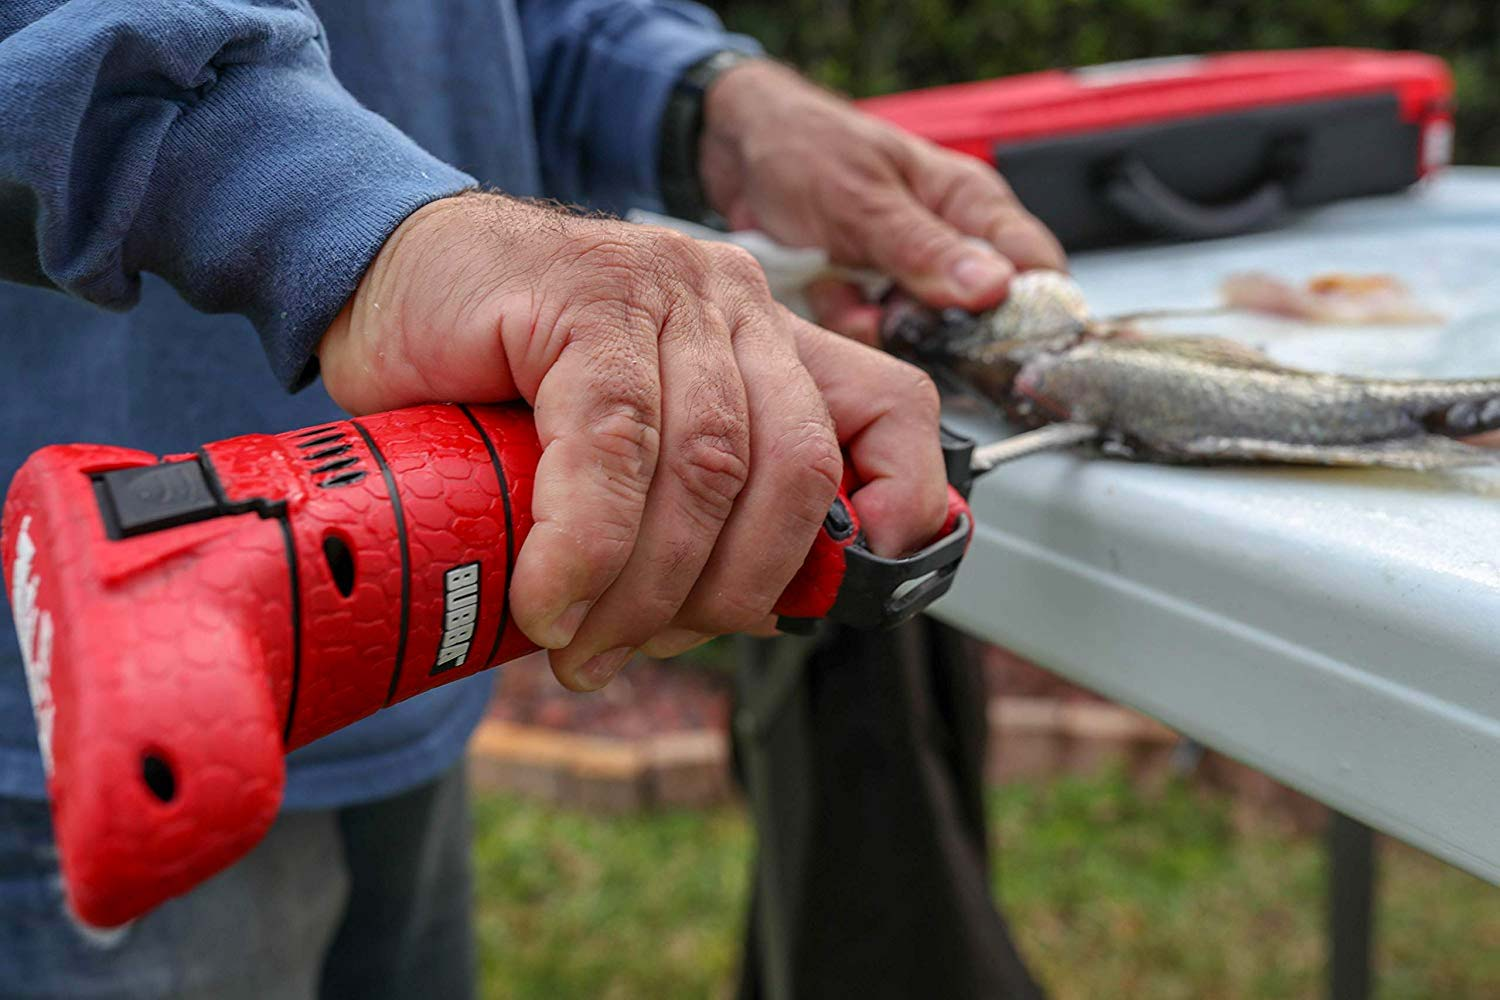 Three Keys to Selecting Your Next Electric Fillet Knife